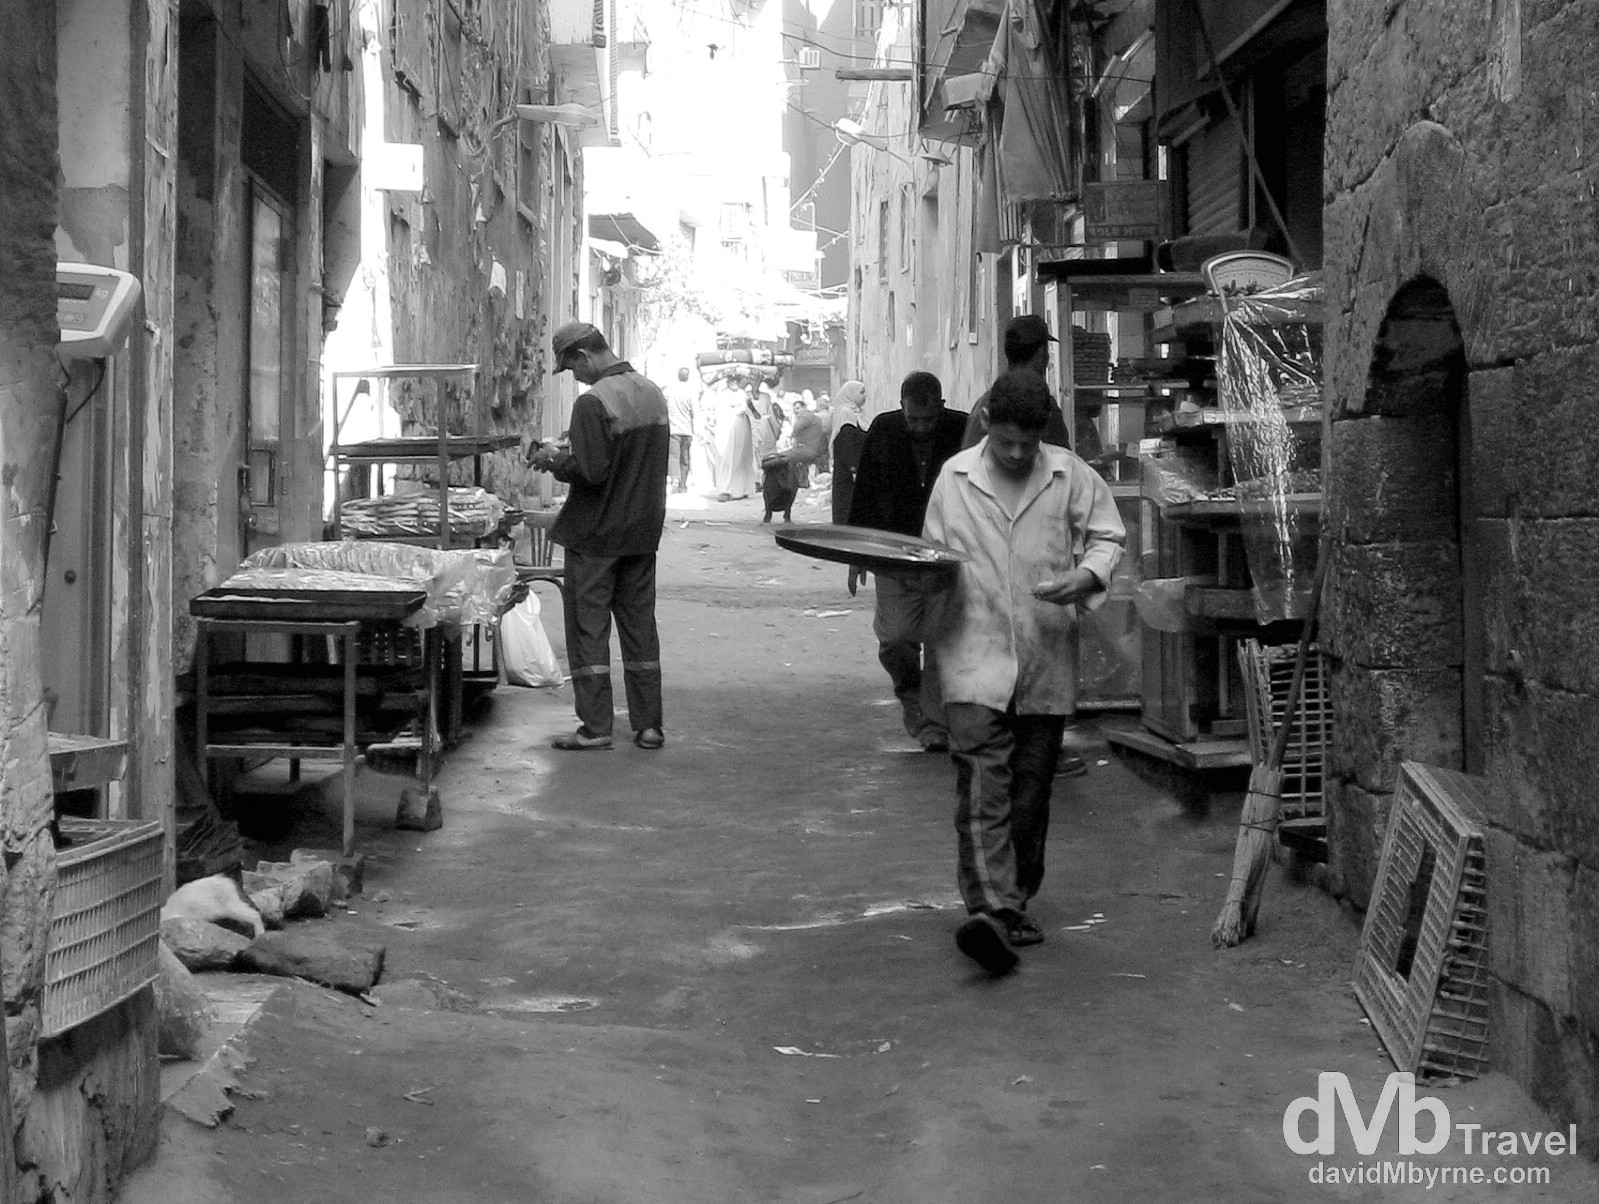 A busy lane in the Islamic Cairo area of Cairo, Egypt. April 14, 2008.